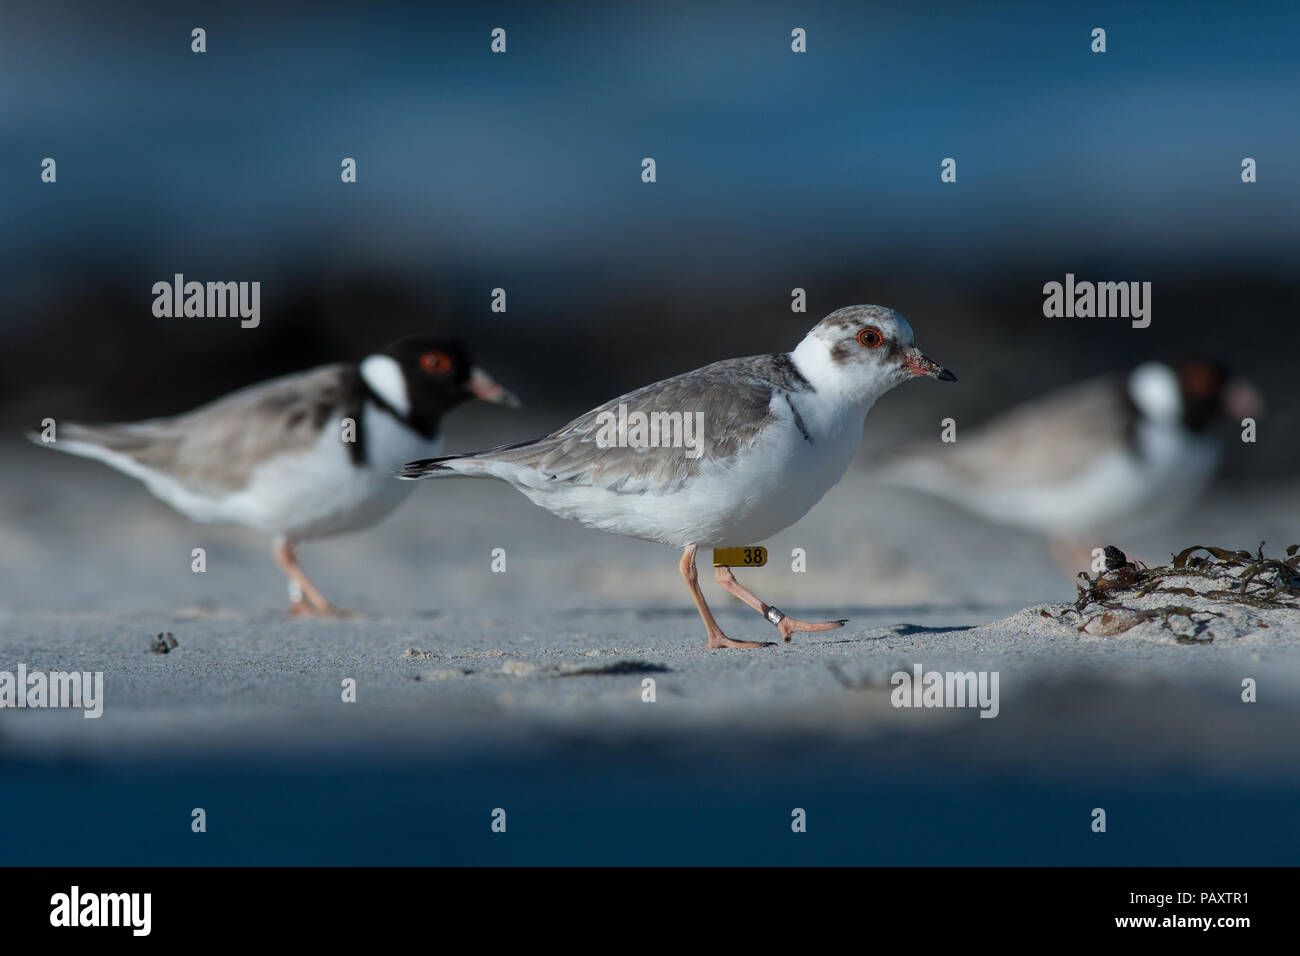 A juvenile Hooded Plover with parents nearby - Stock Image